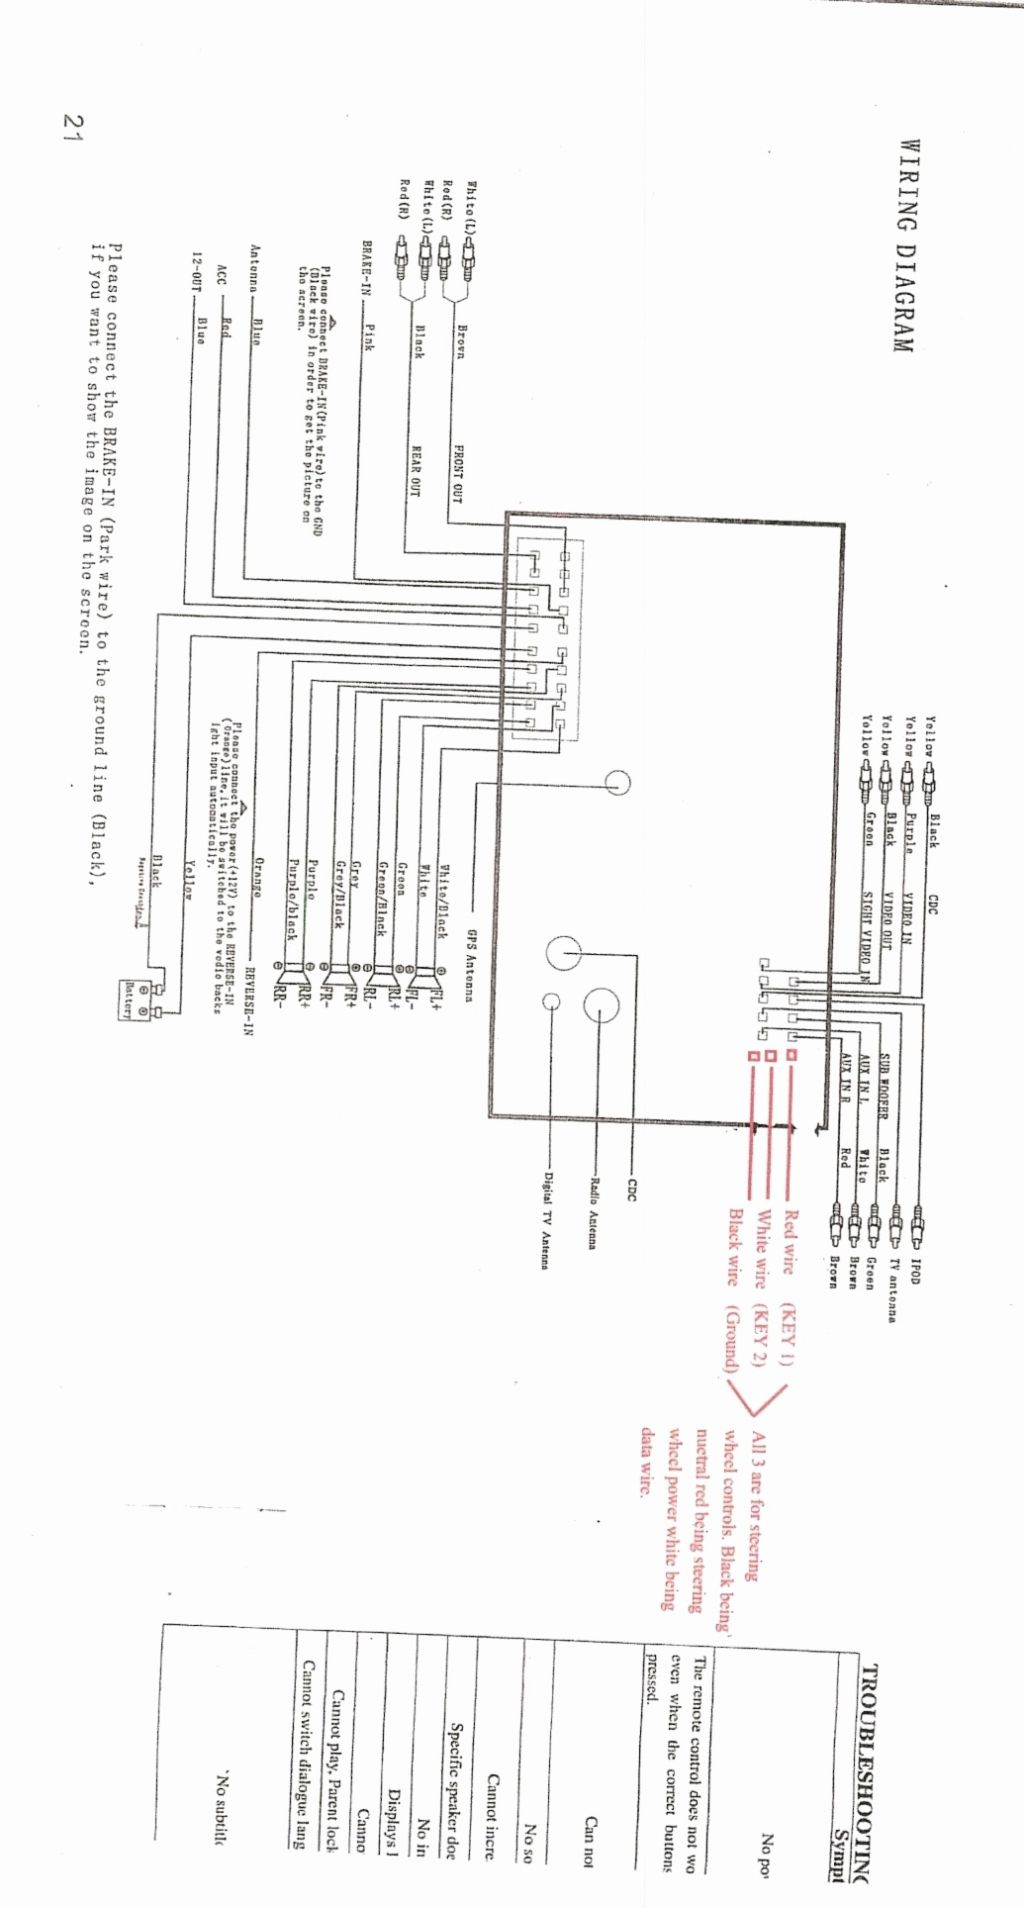 Gmos Lan 02 Wiring Diagram Download